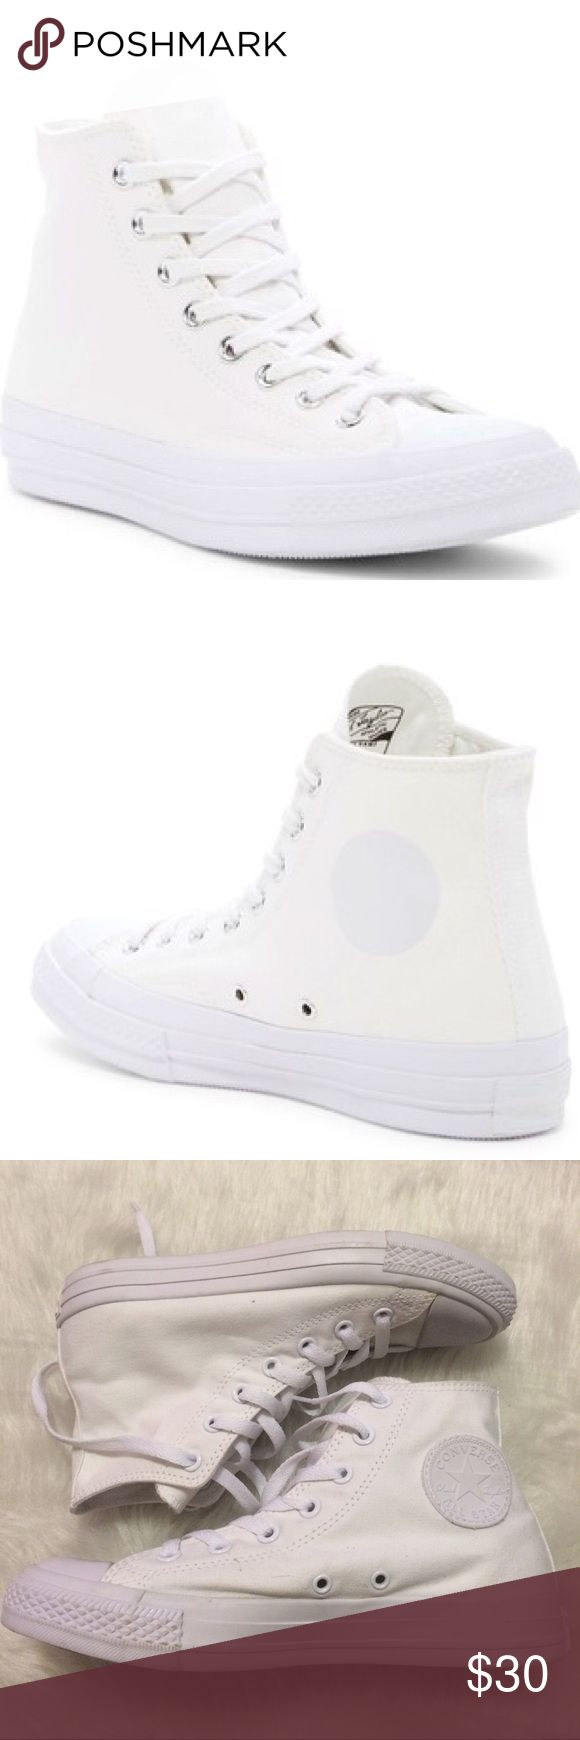 🎉1 HOUR SALE! Converse Chuck Taylor's all white No box Converse Shoes Sneakers